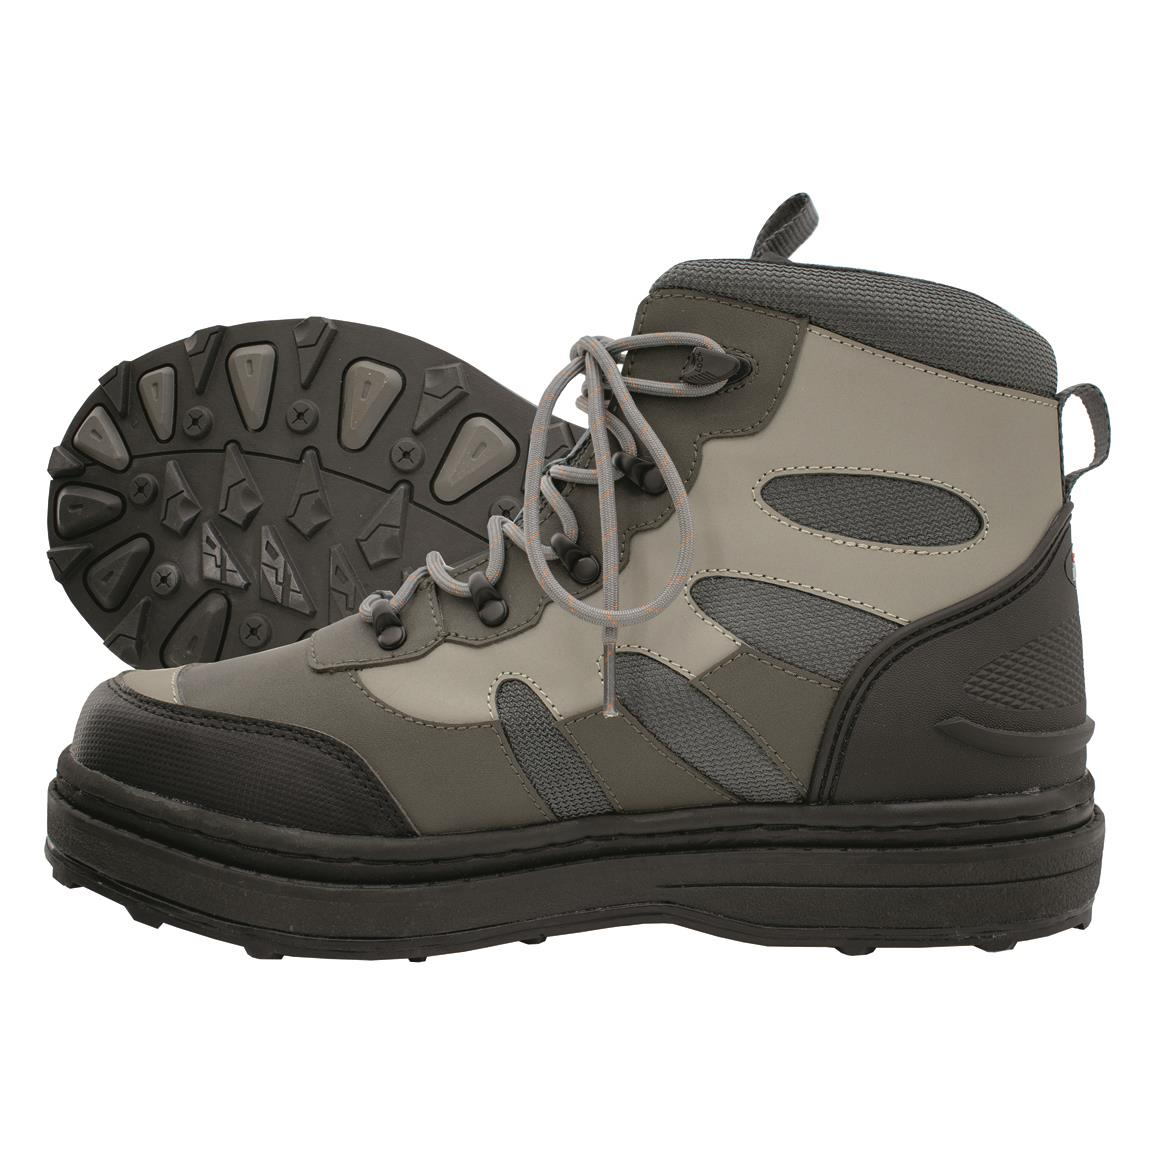 frogg toggs Pilot II Wading Boots, Rubber Sole, Cleated, Khaki/black